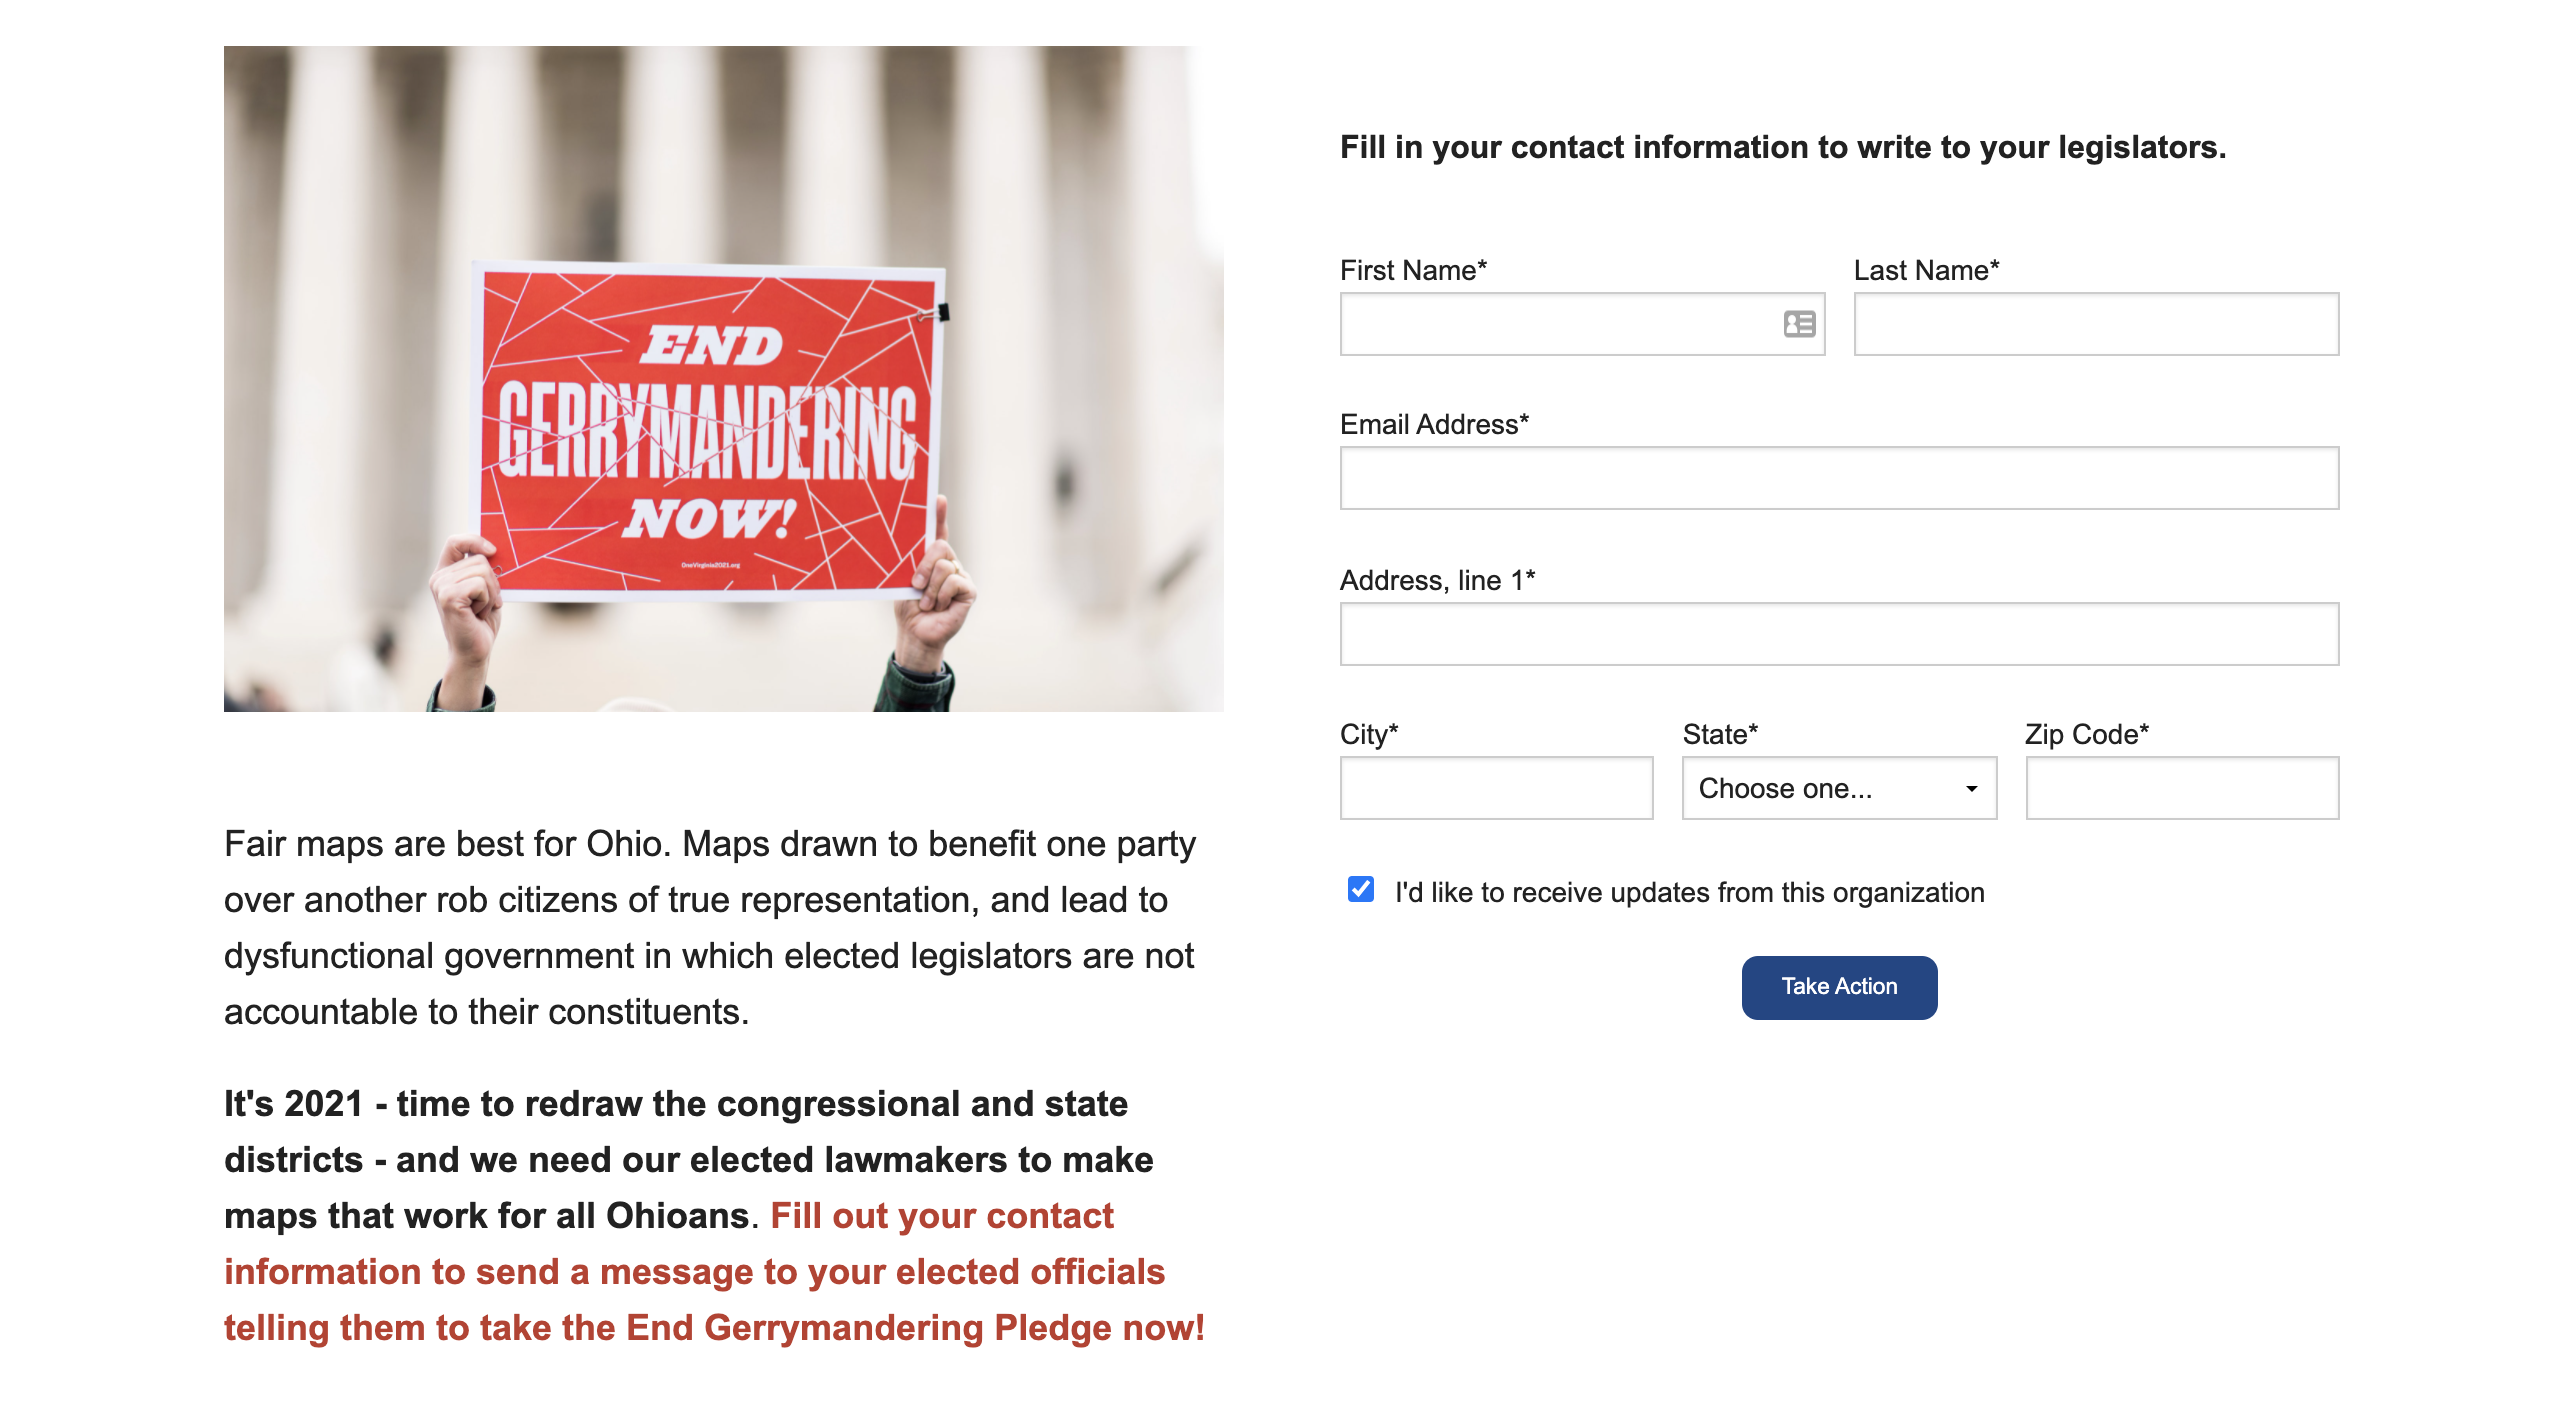 """The League of Women Voters in Ohio encourages citizens to contact their election officials to take a pledge to end gerrymandering. <a href=""""http://It's 2021 - time to redraw the congressional and state districts - and we need our elected lawmakers to make maps that work for all Ohioans. Fill out your contact information to send a message to your elected officials telling them to take the End Gerrymandering Pledge now!"""" target=""""_blank"""" rel=""""noreferrer noopener"""">""""It is time to redraw the congressional and state districts - and we need our elected lawmakers to make maps that work for all Ohioans.Fill out your contact information to send a message to your elected officials telling them to take the End Gerrymandering Pledge now!"""""""